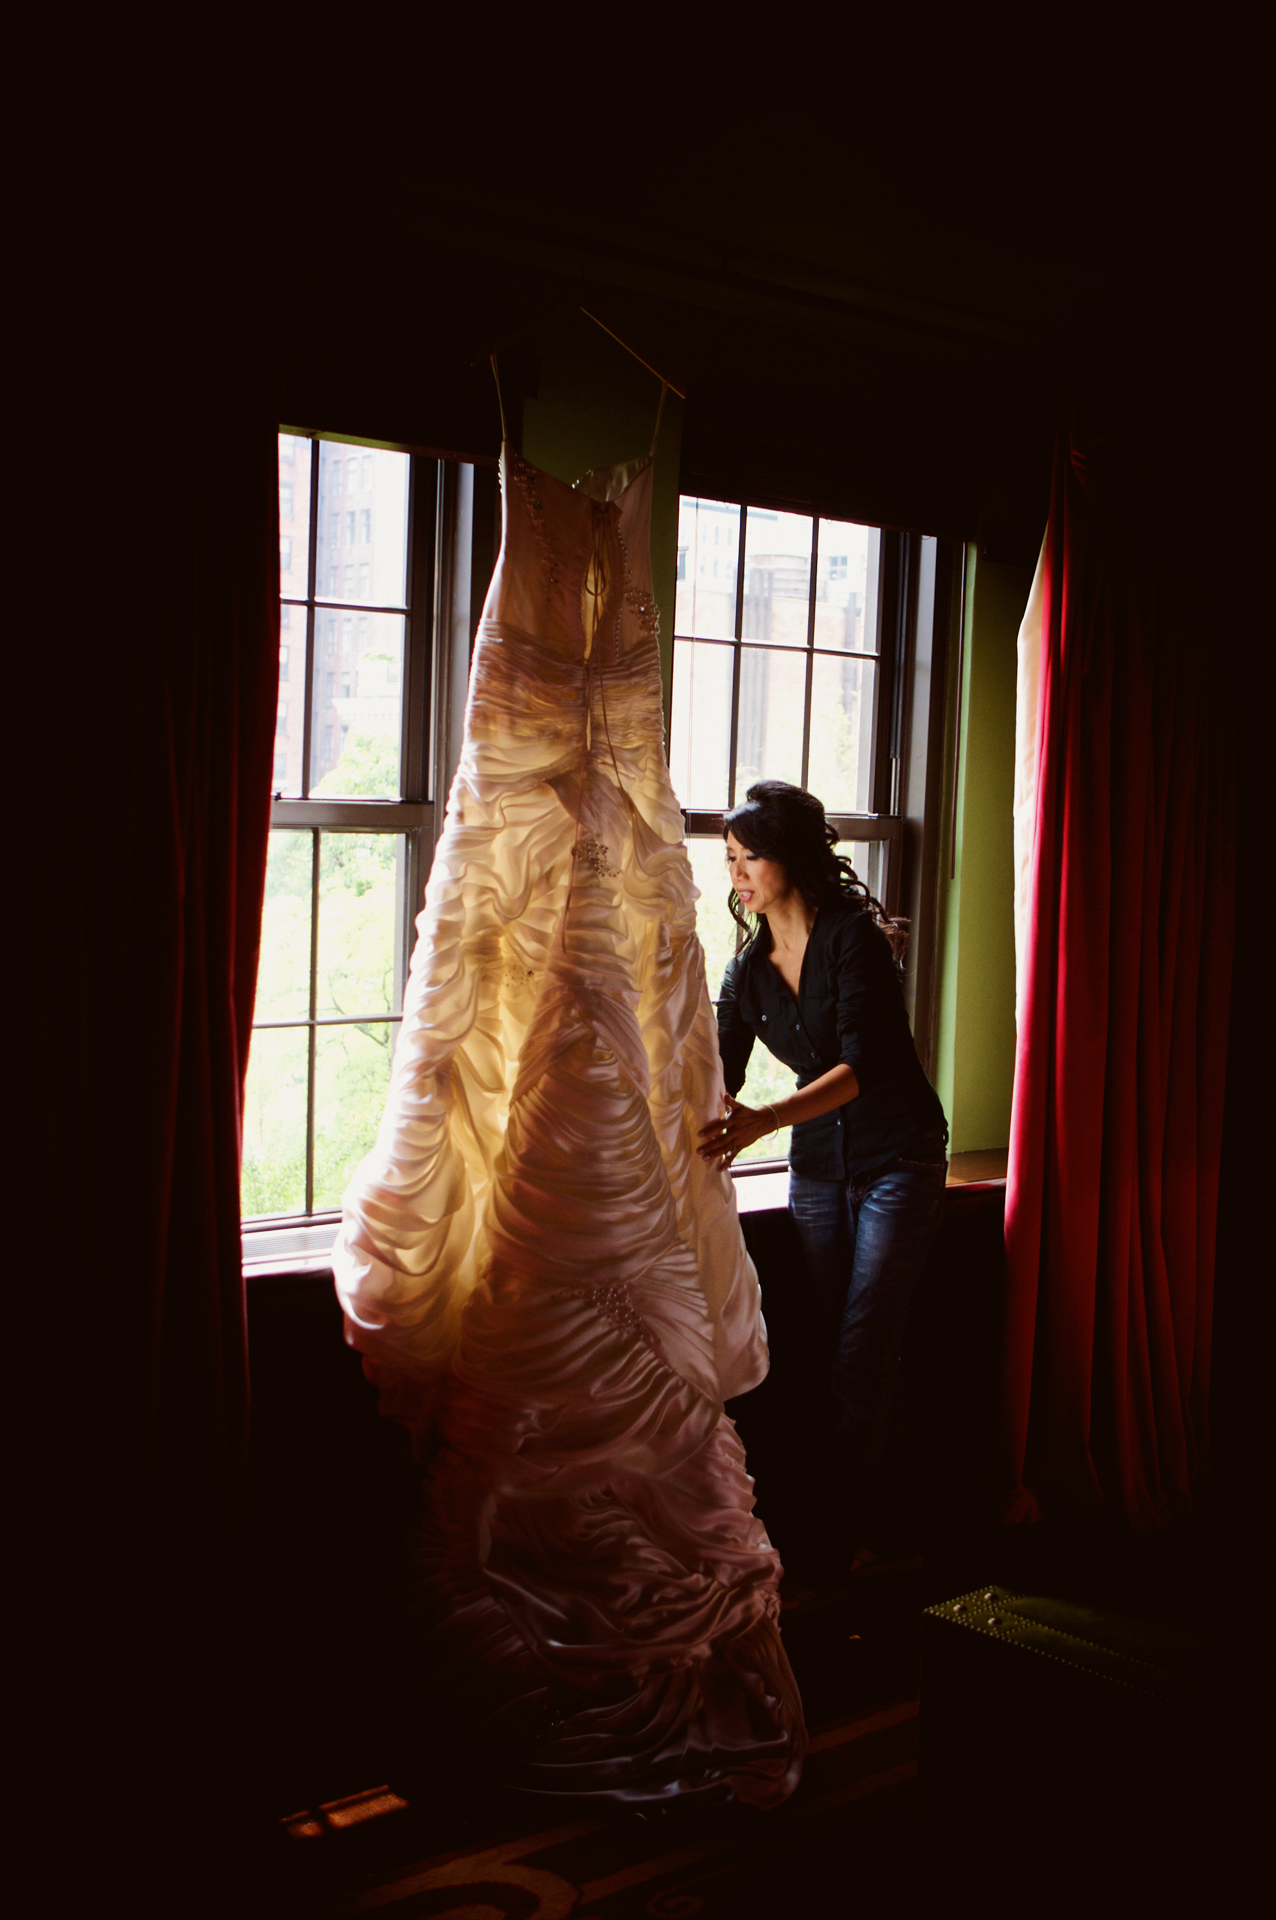 The brides mother hangs the dress in the window as the bride gets ready for her wedding at Angel Orensanz in NYC.